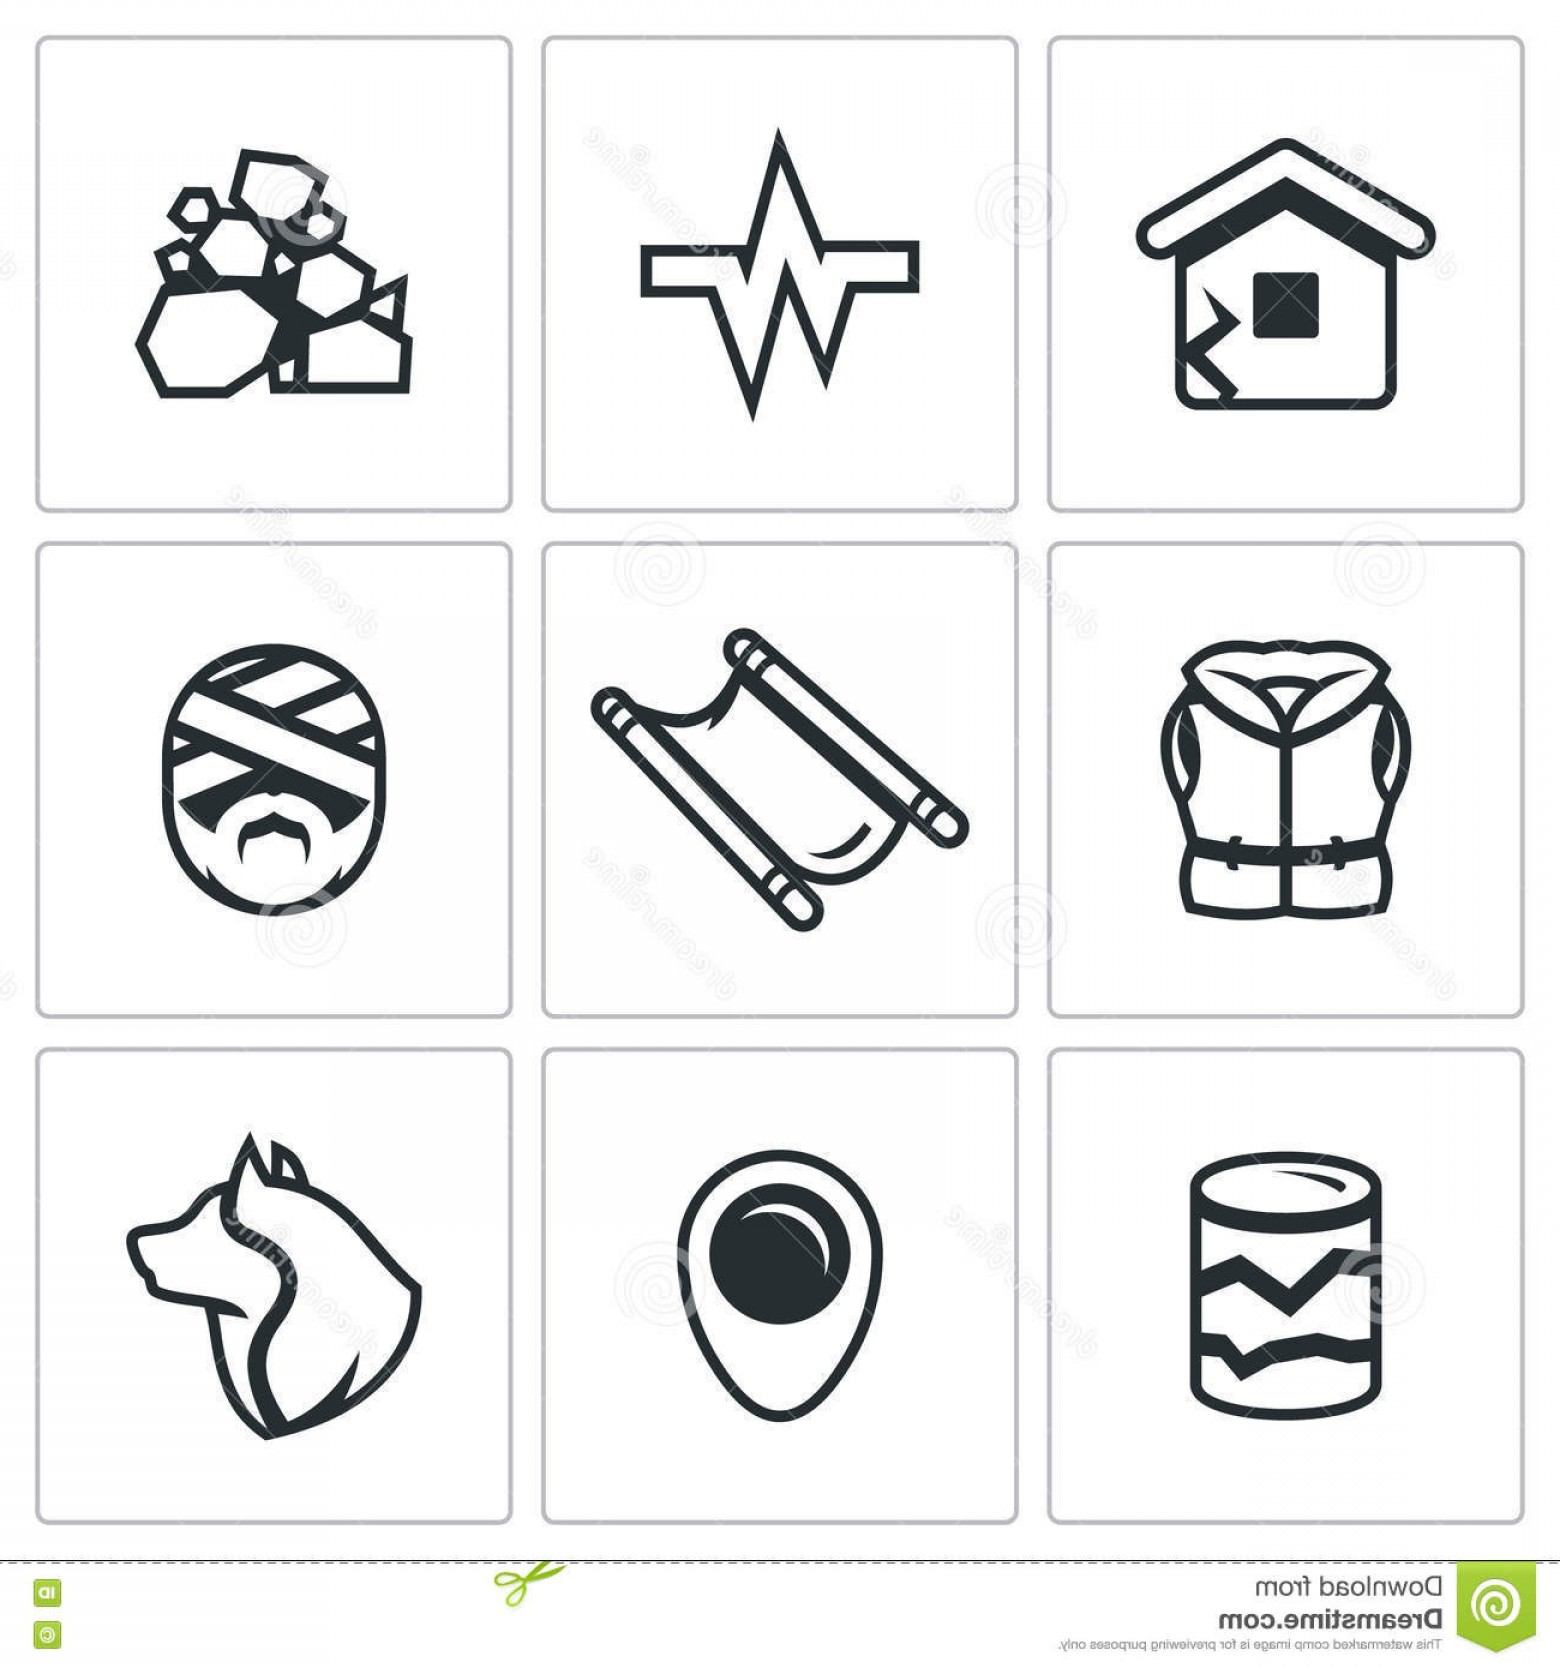 Earthquake Rescue Vector: Stock Illustration Vector Set Earthquake Icons Operational Rescue Service Building Collapse Image